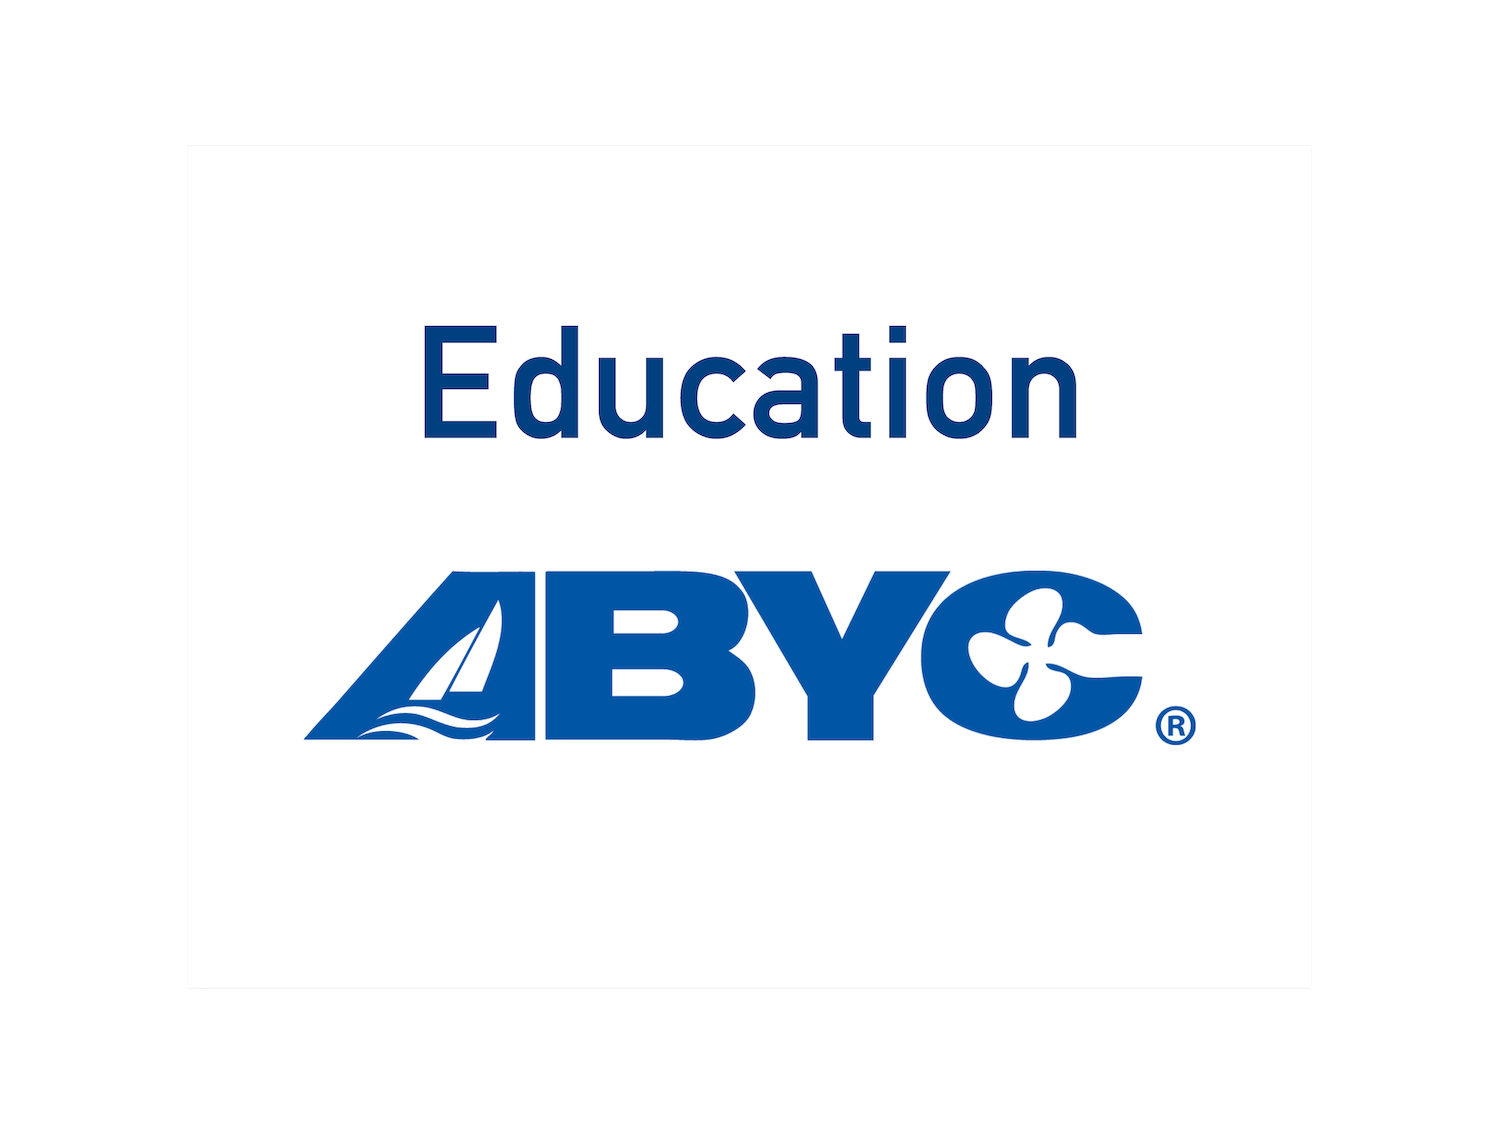 ABYC Education Graphic.png